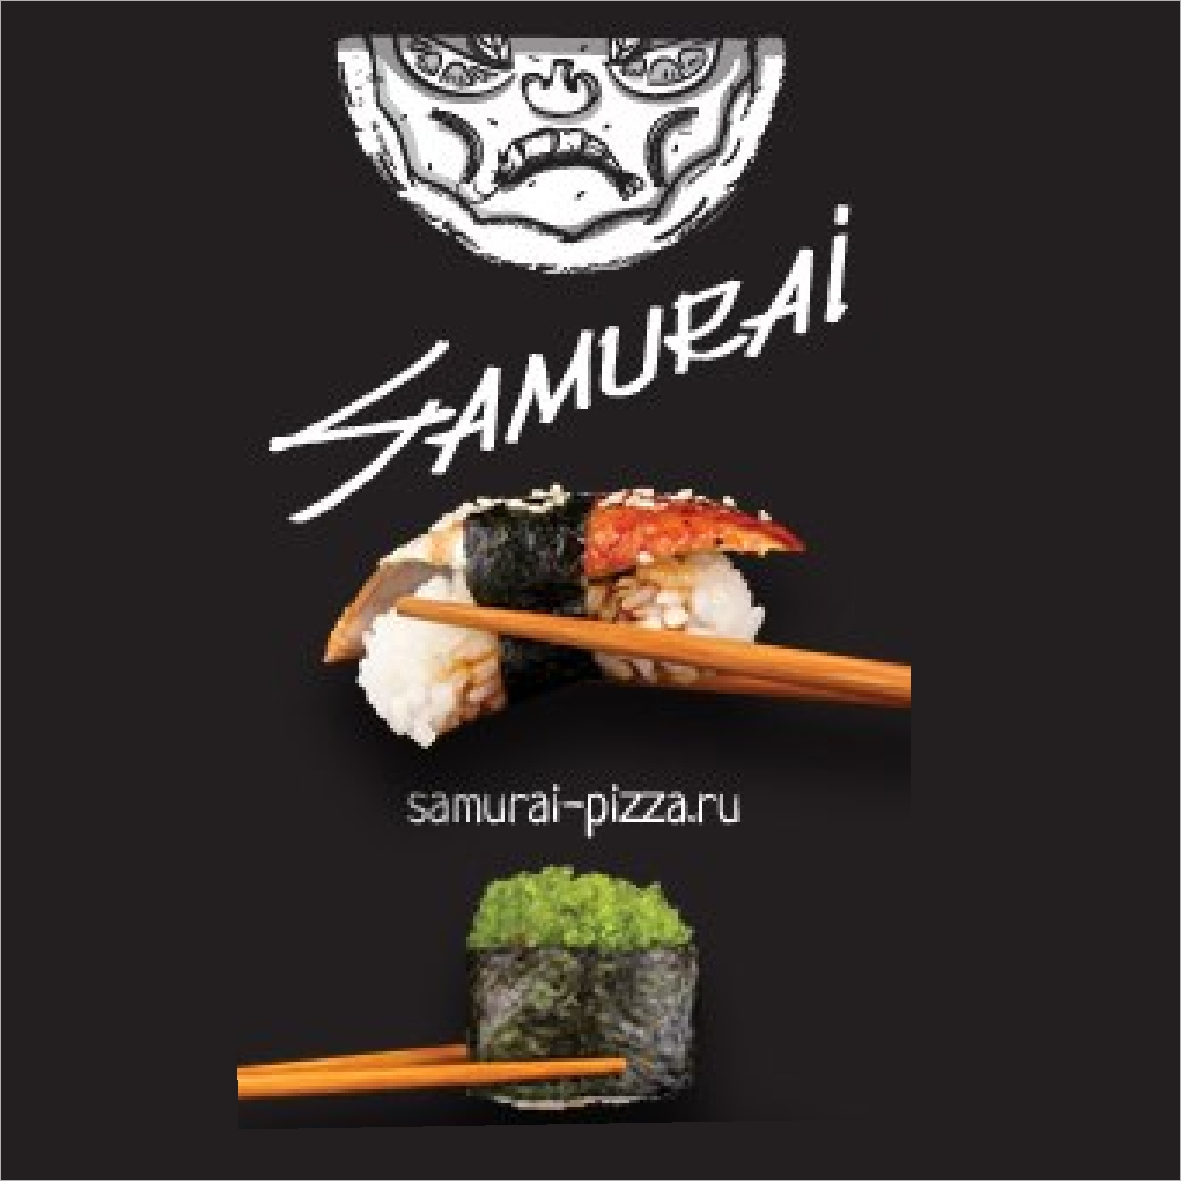 Samurai Pizza